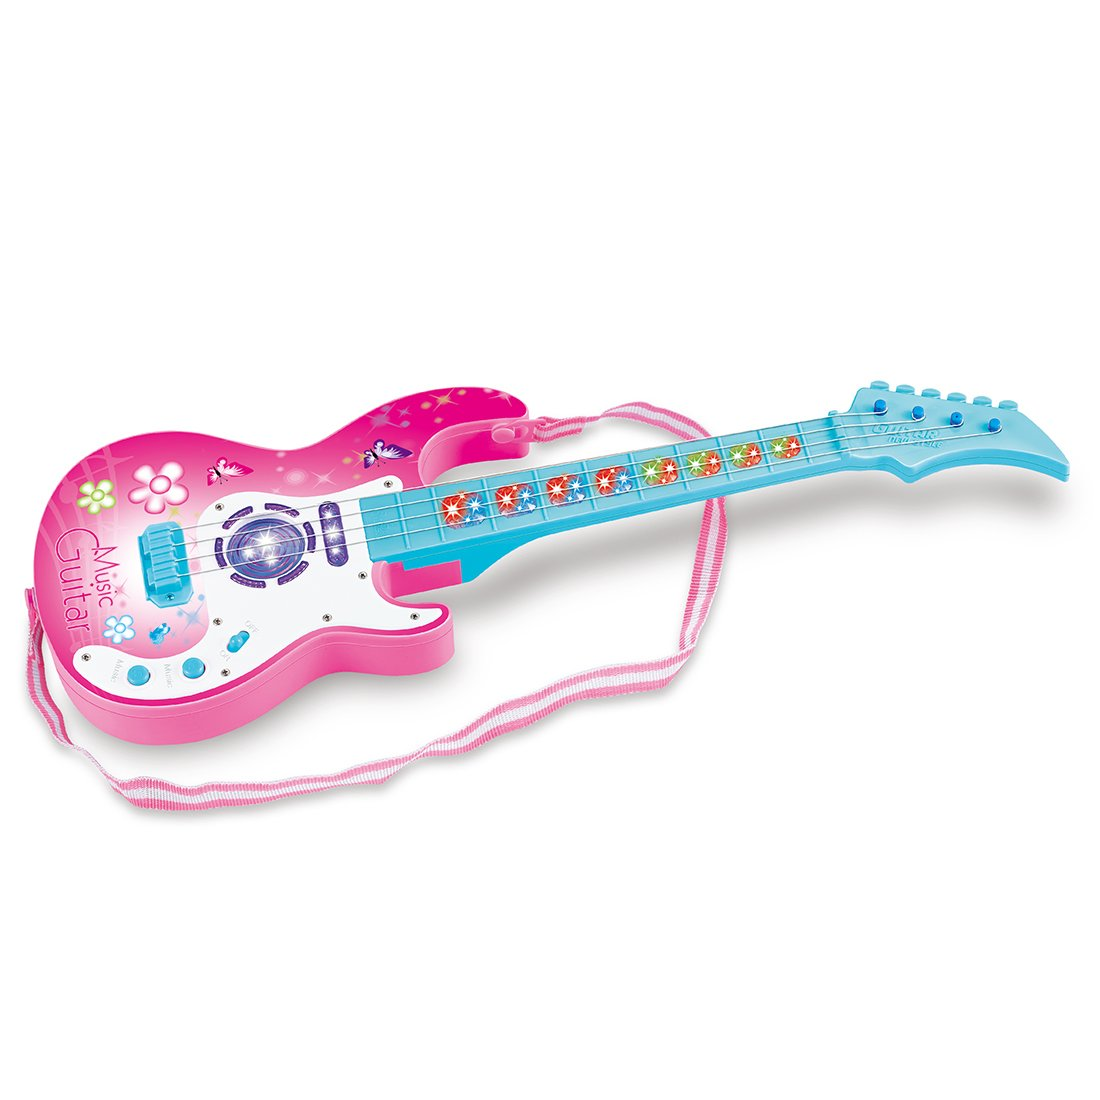 ANNA SHOP Kids Electric Guitar, Simulation Cute 4 String Music Guitar Kids Children Musical Instruments Educational Toy for Over 2 years old (Type 1)